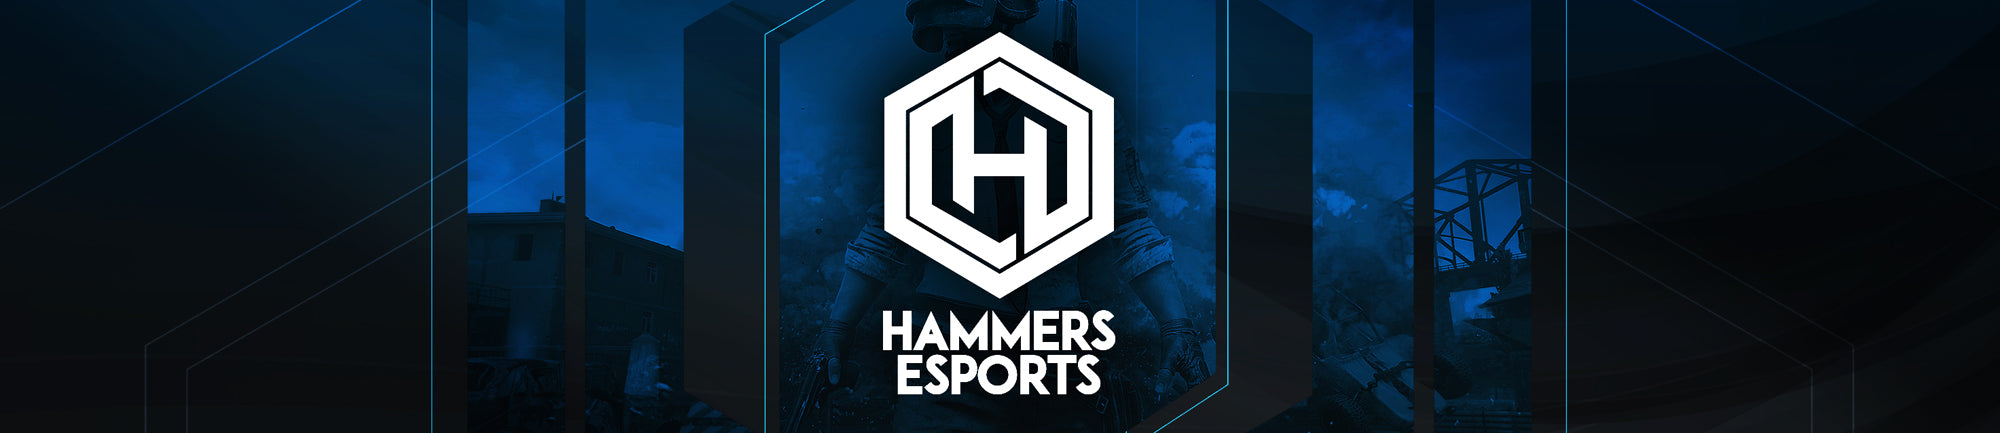 Hammers Esports